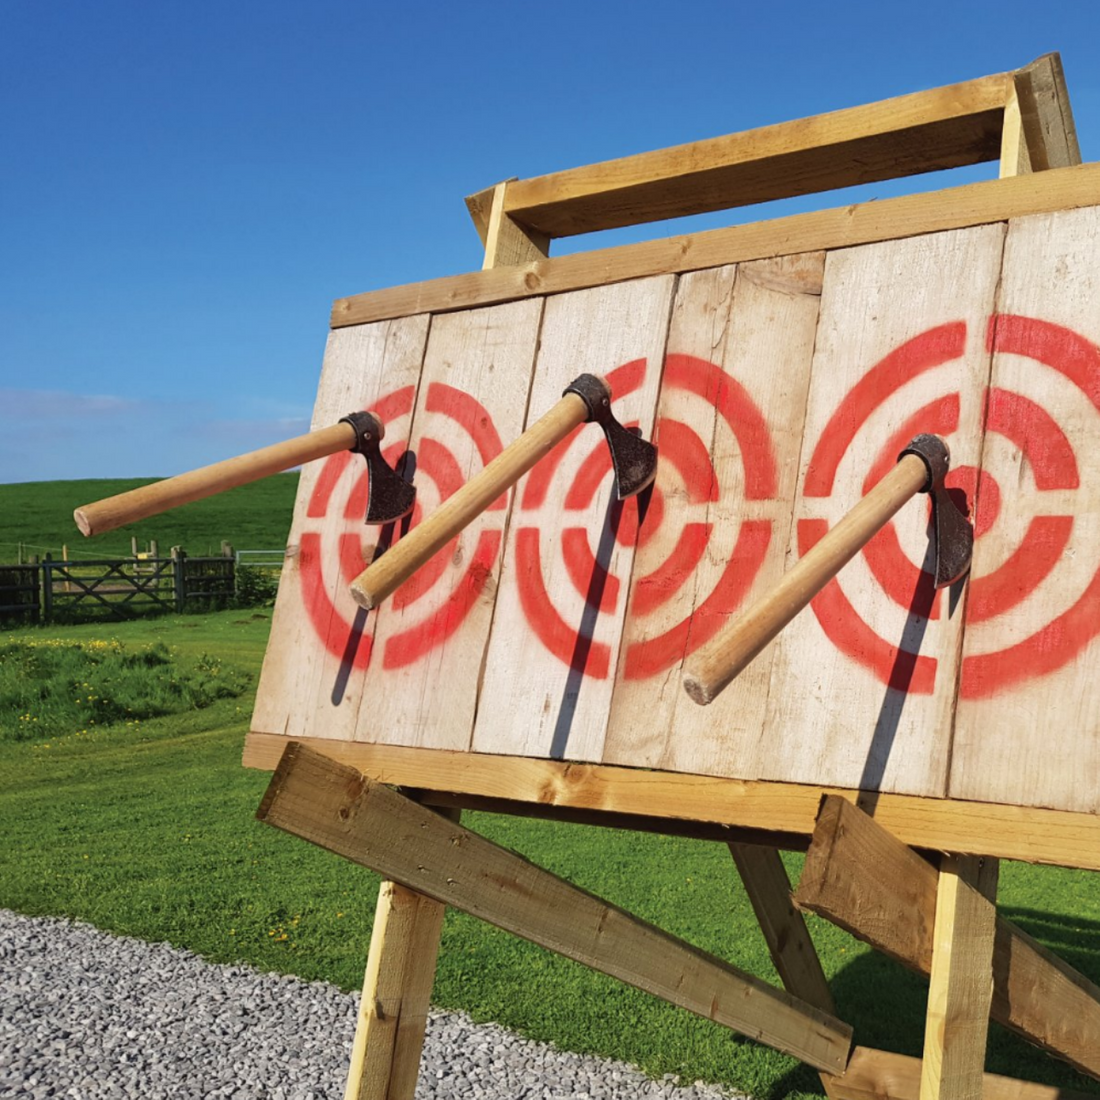 Group axe throwing for Stag parties or Hen parties in Sheffield.